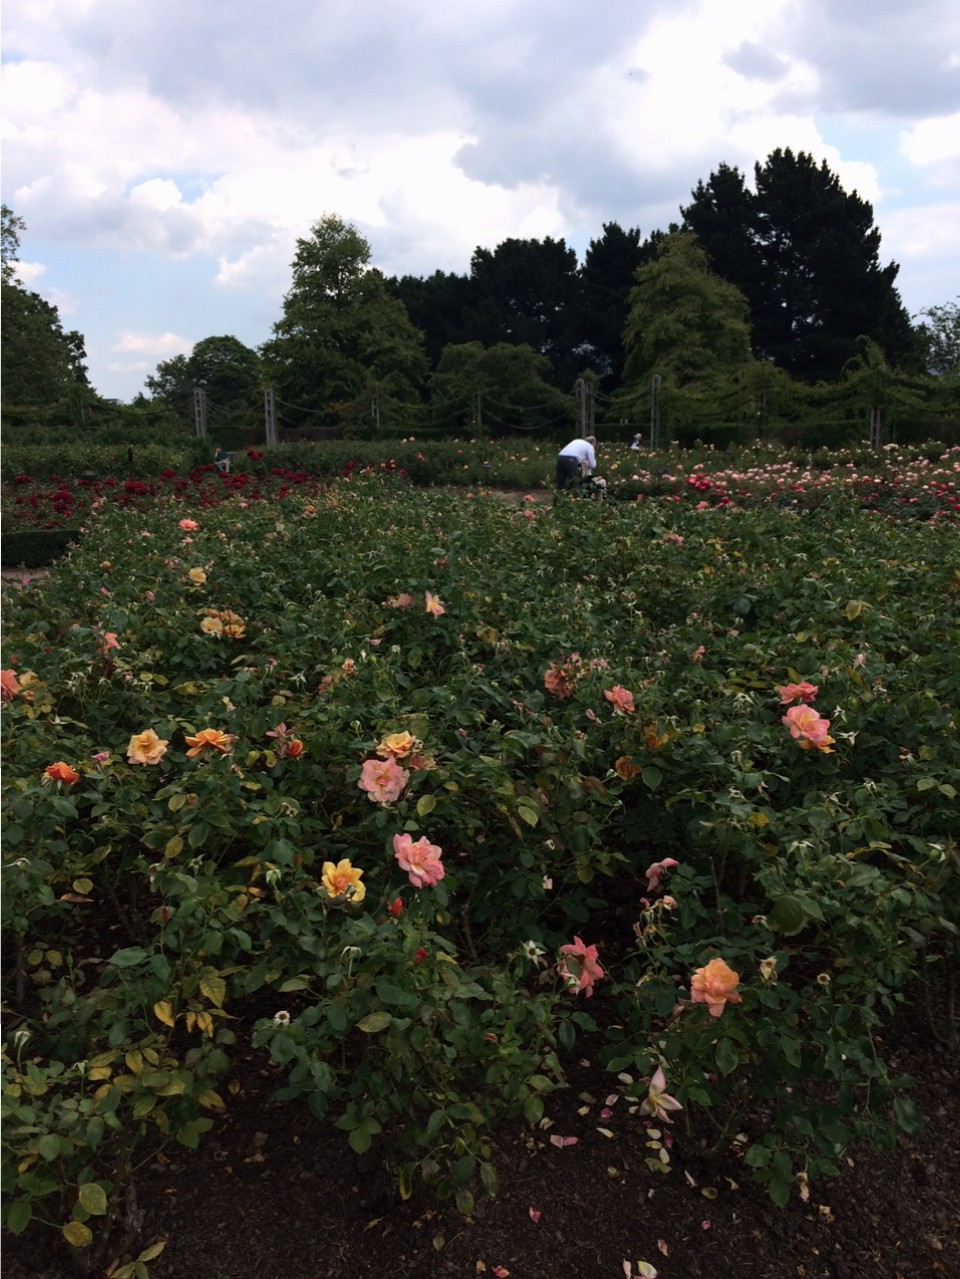 The rose garden goes on and on, organized by variety and color. Spectacular!